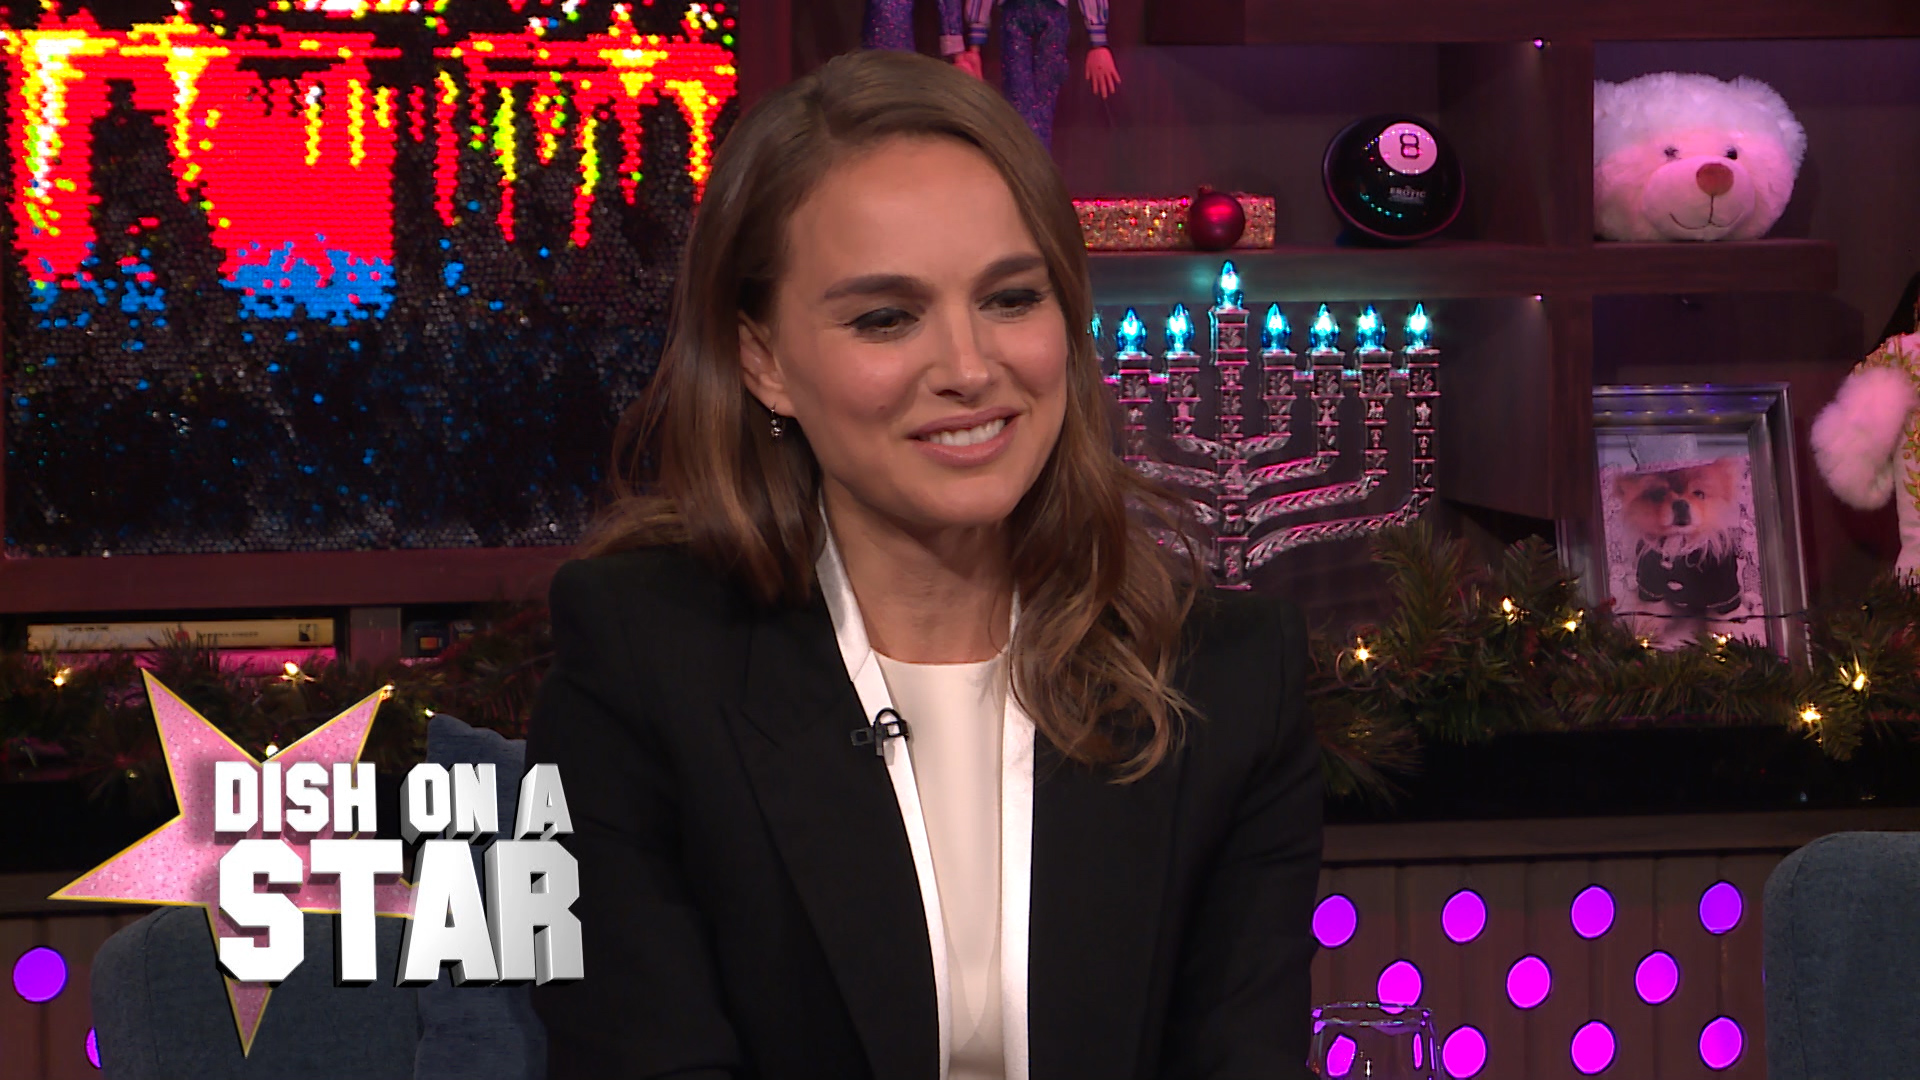 Natalie Portman's Honest Opinion of Jar Jar Binks